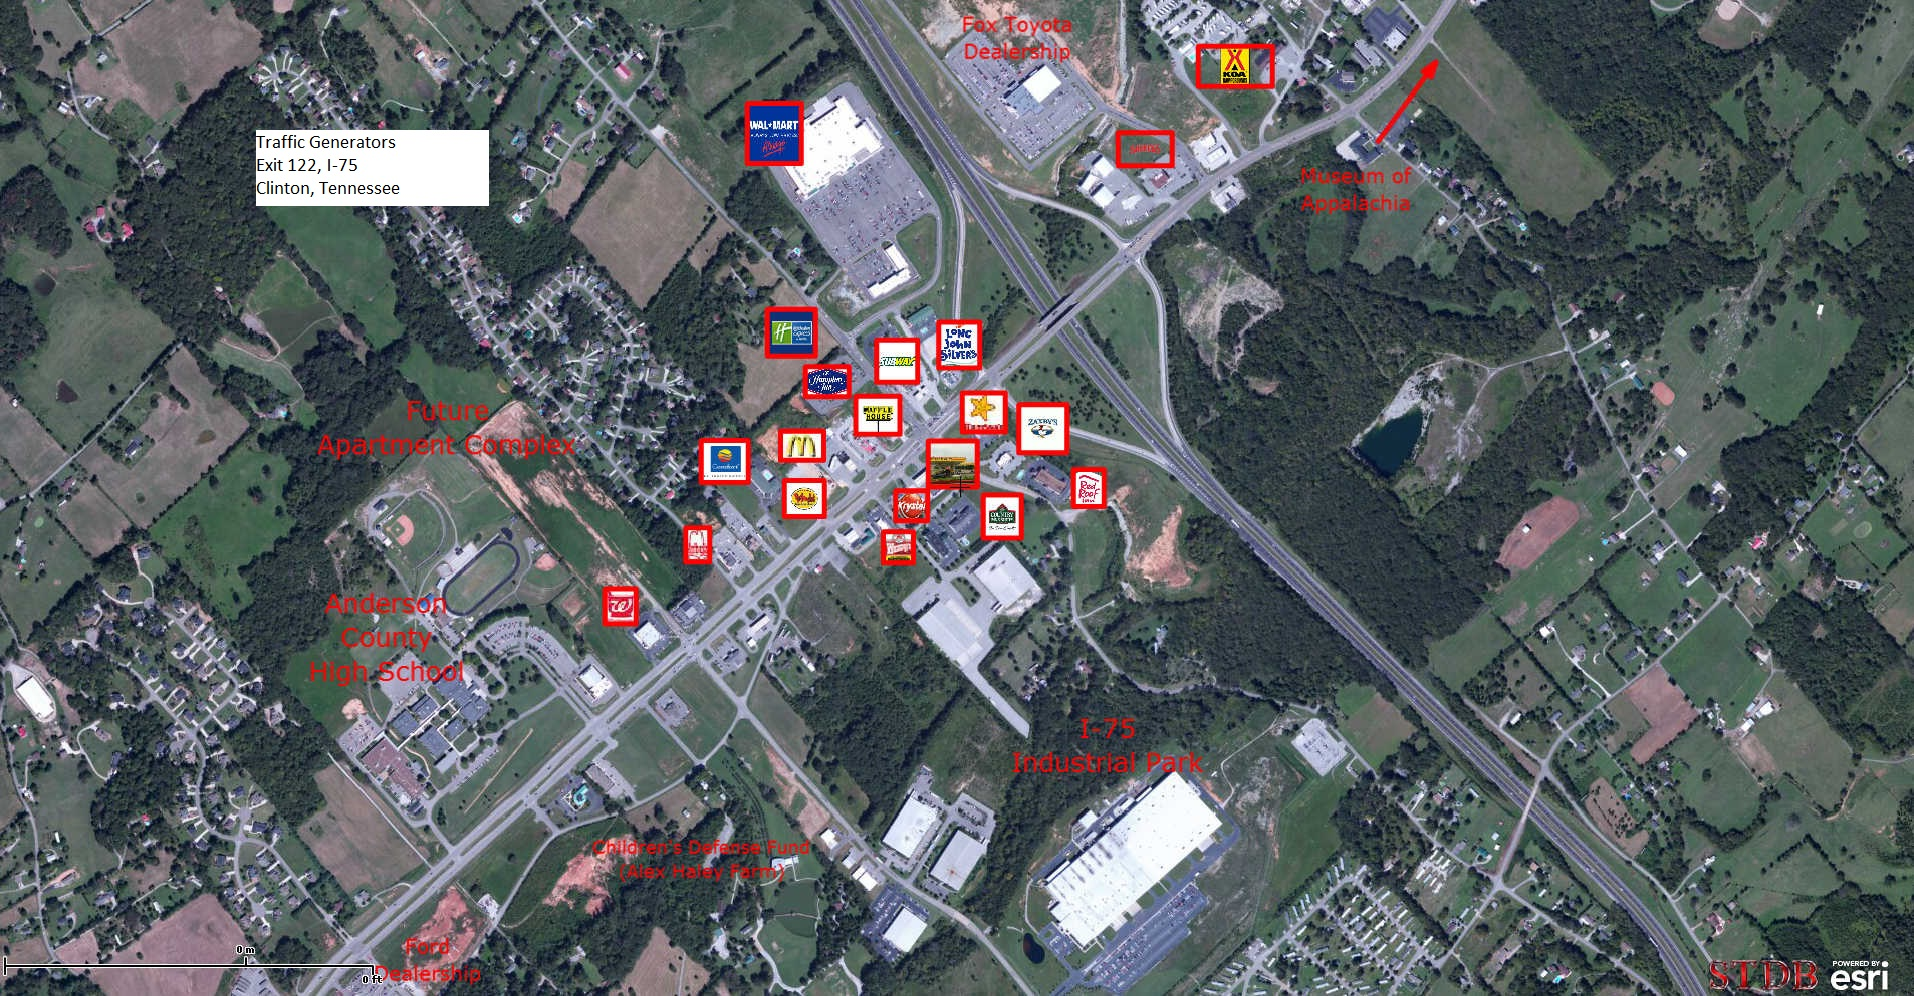 I 75 Traffic Map.Anderson County Retail Commercial Development Clinton At I 75